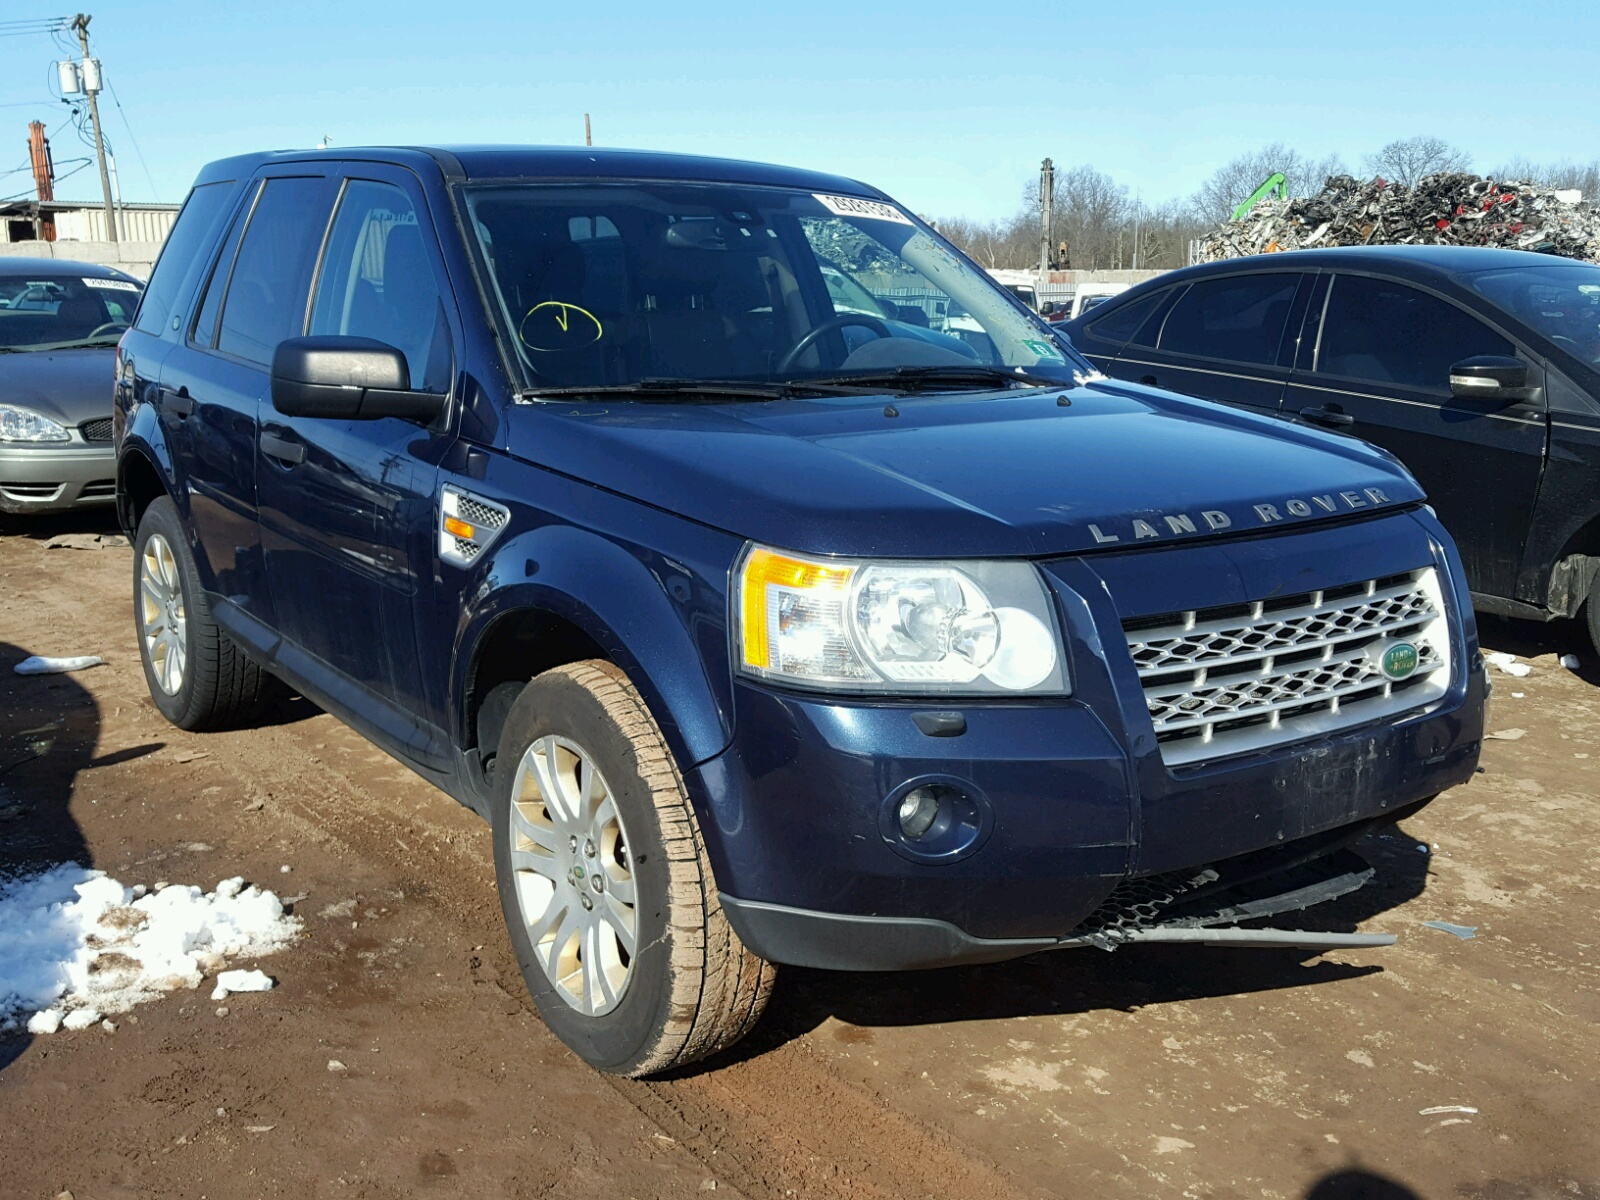 landrover rover for sale articles photos makes bestcarmag informations land com